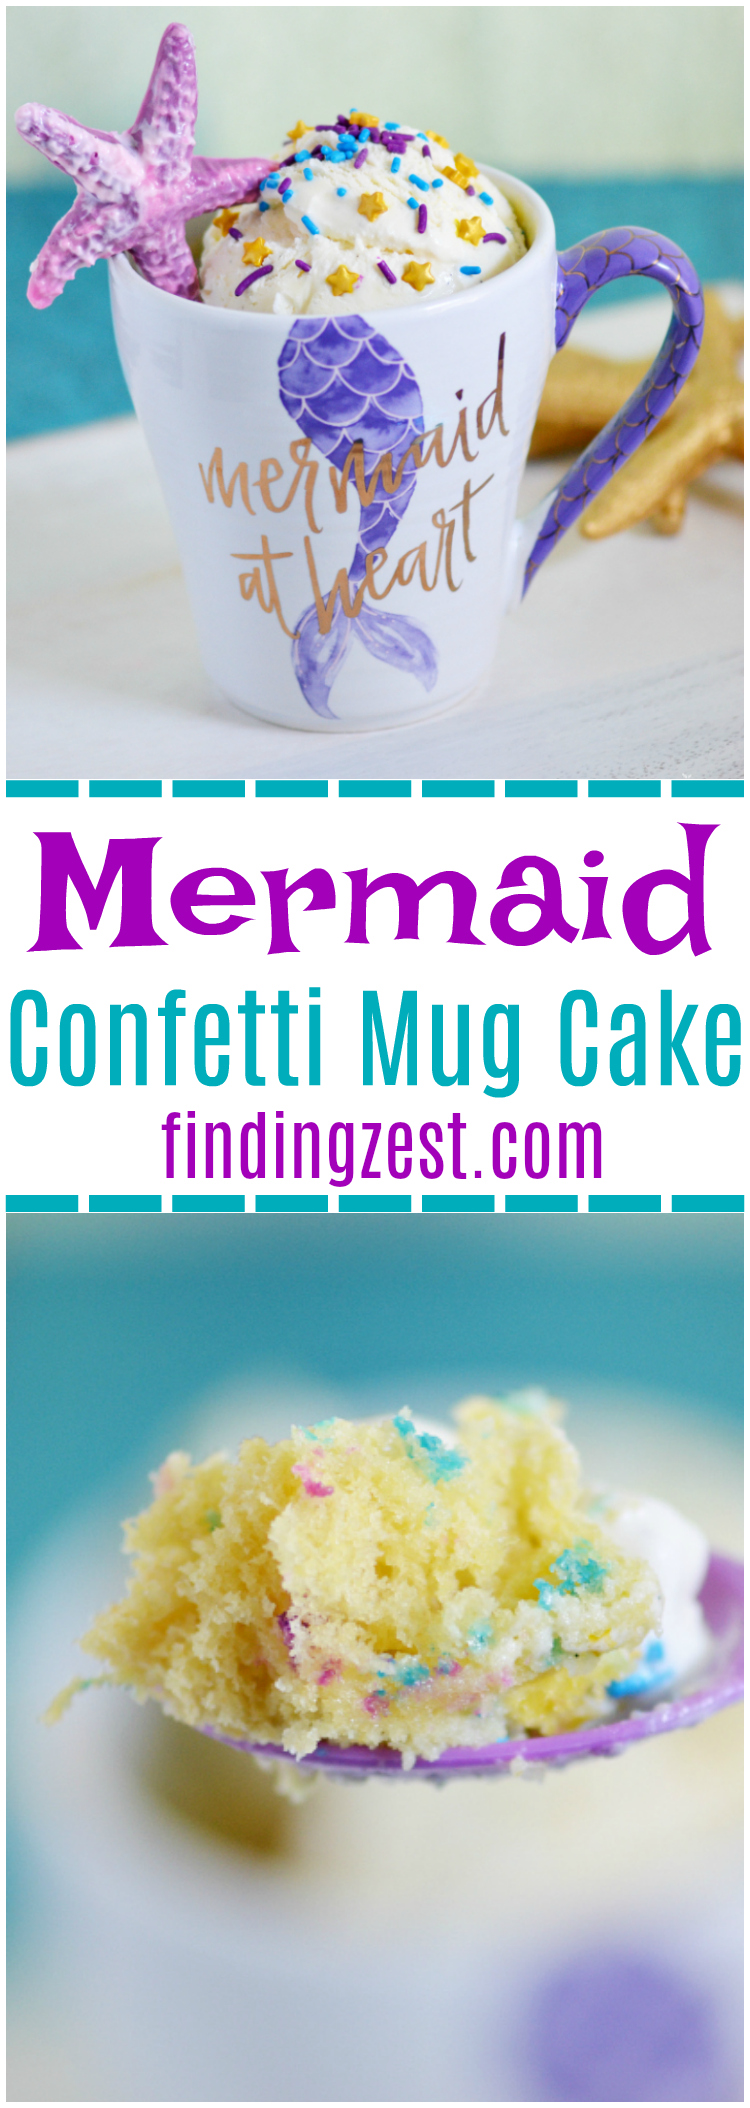 This mermaid confetti mug cake makes it easy to have a single serving of delicious cake anytime with just a few ingredients and a microwave! Topped with vanilla ice cream, chocolate starfish and sprinkles, this mermaid mug cake is perfect for mermaid fans any day or as special birthday treat!